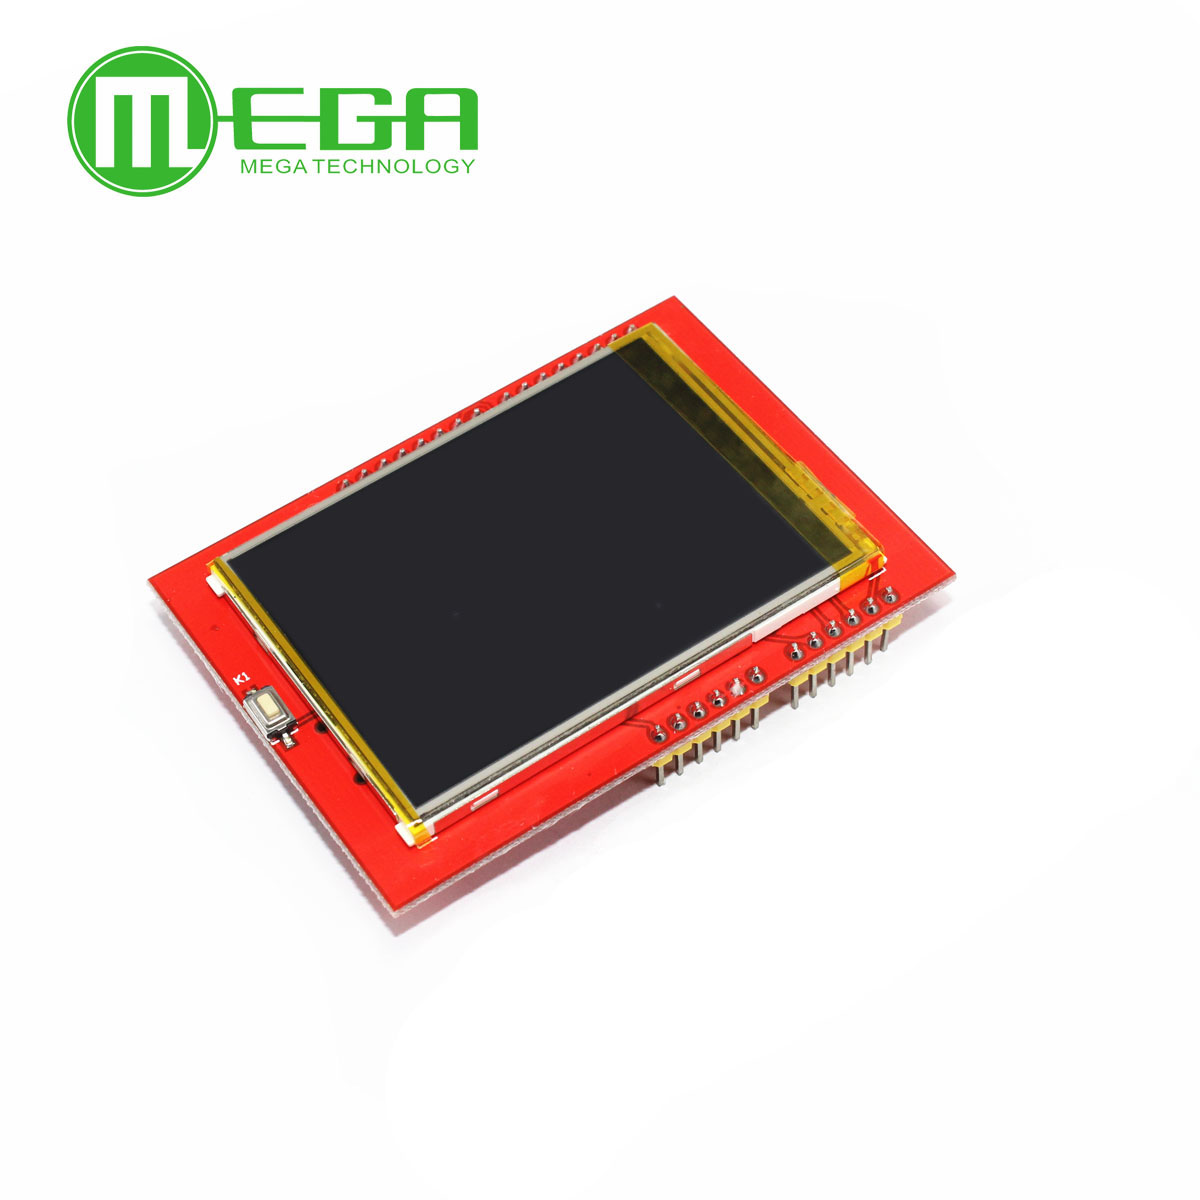 LCD module TFT 2.4 inch TFT LCD screen for UNO R3 Board and support mega 2560LCD module TFT 2.4 inch TFT LCD screen for UNO R3 Board and support mega 2560